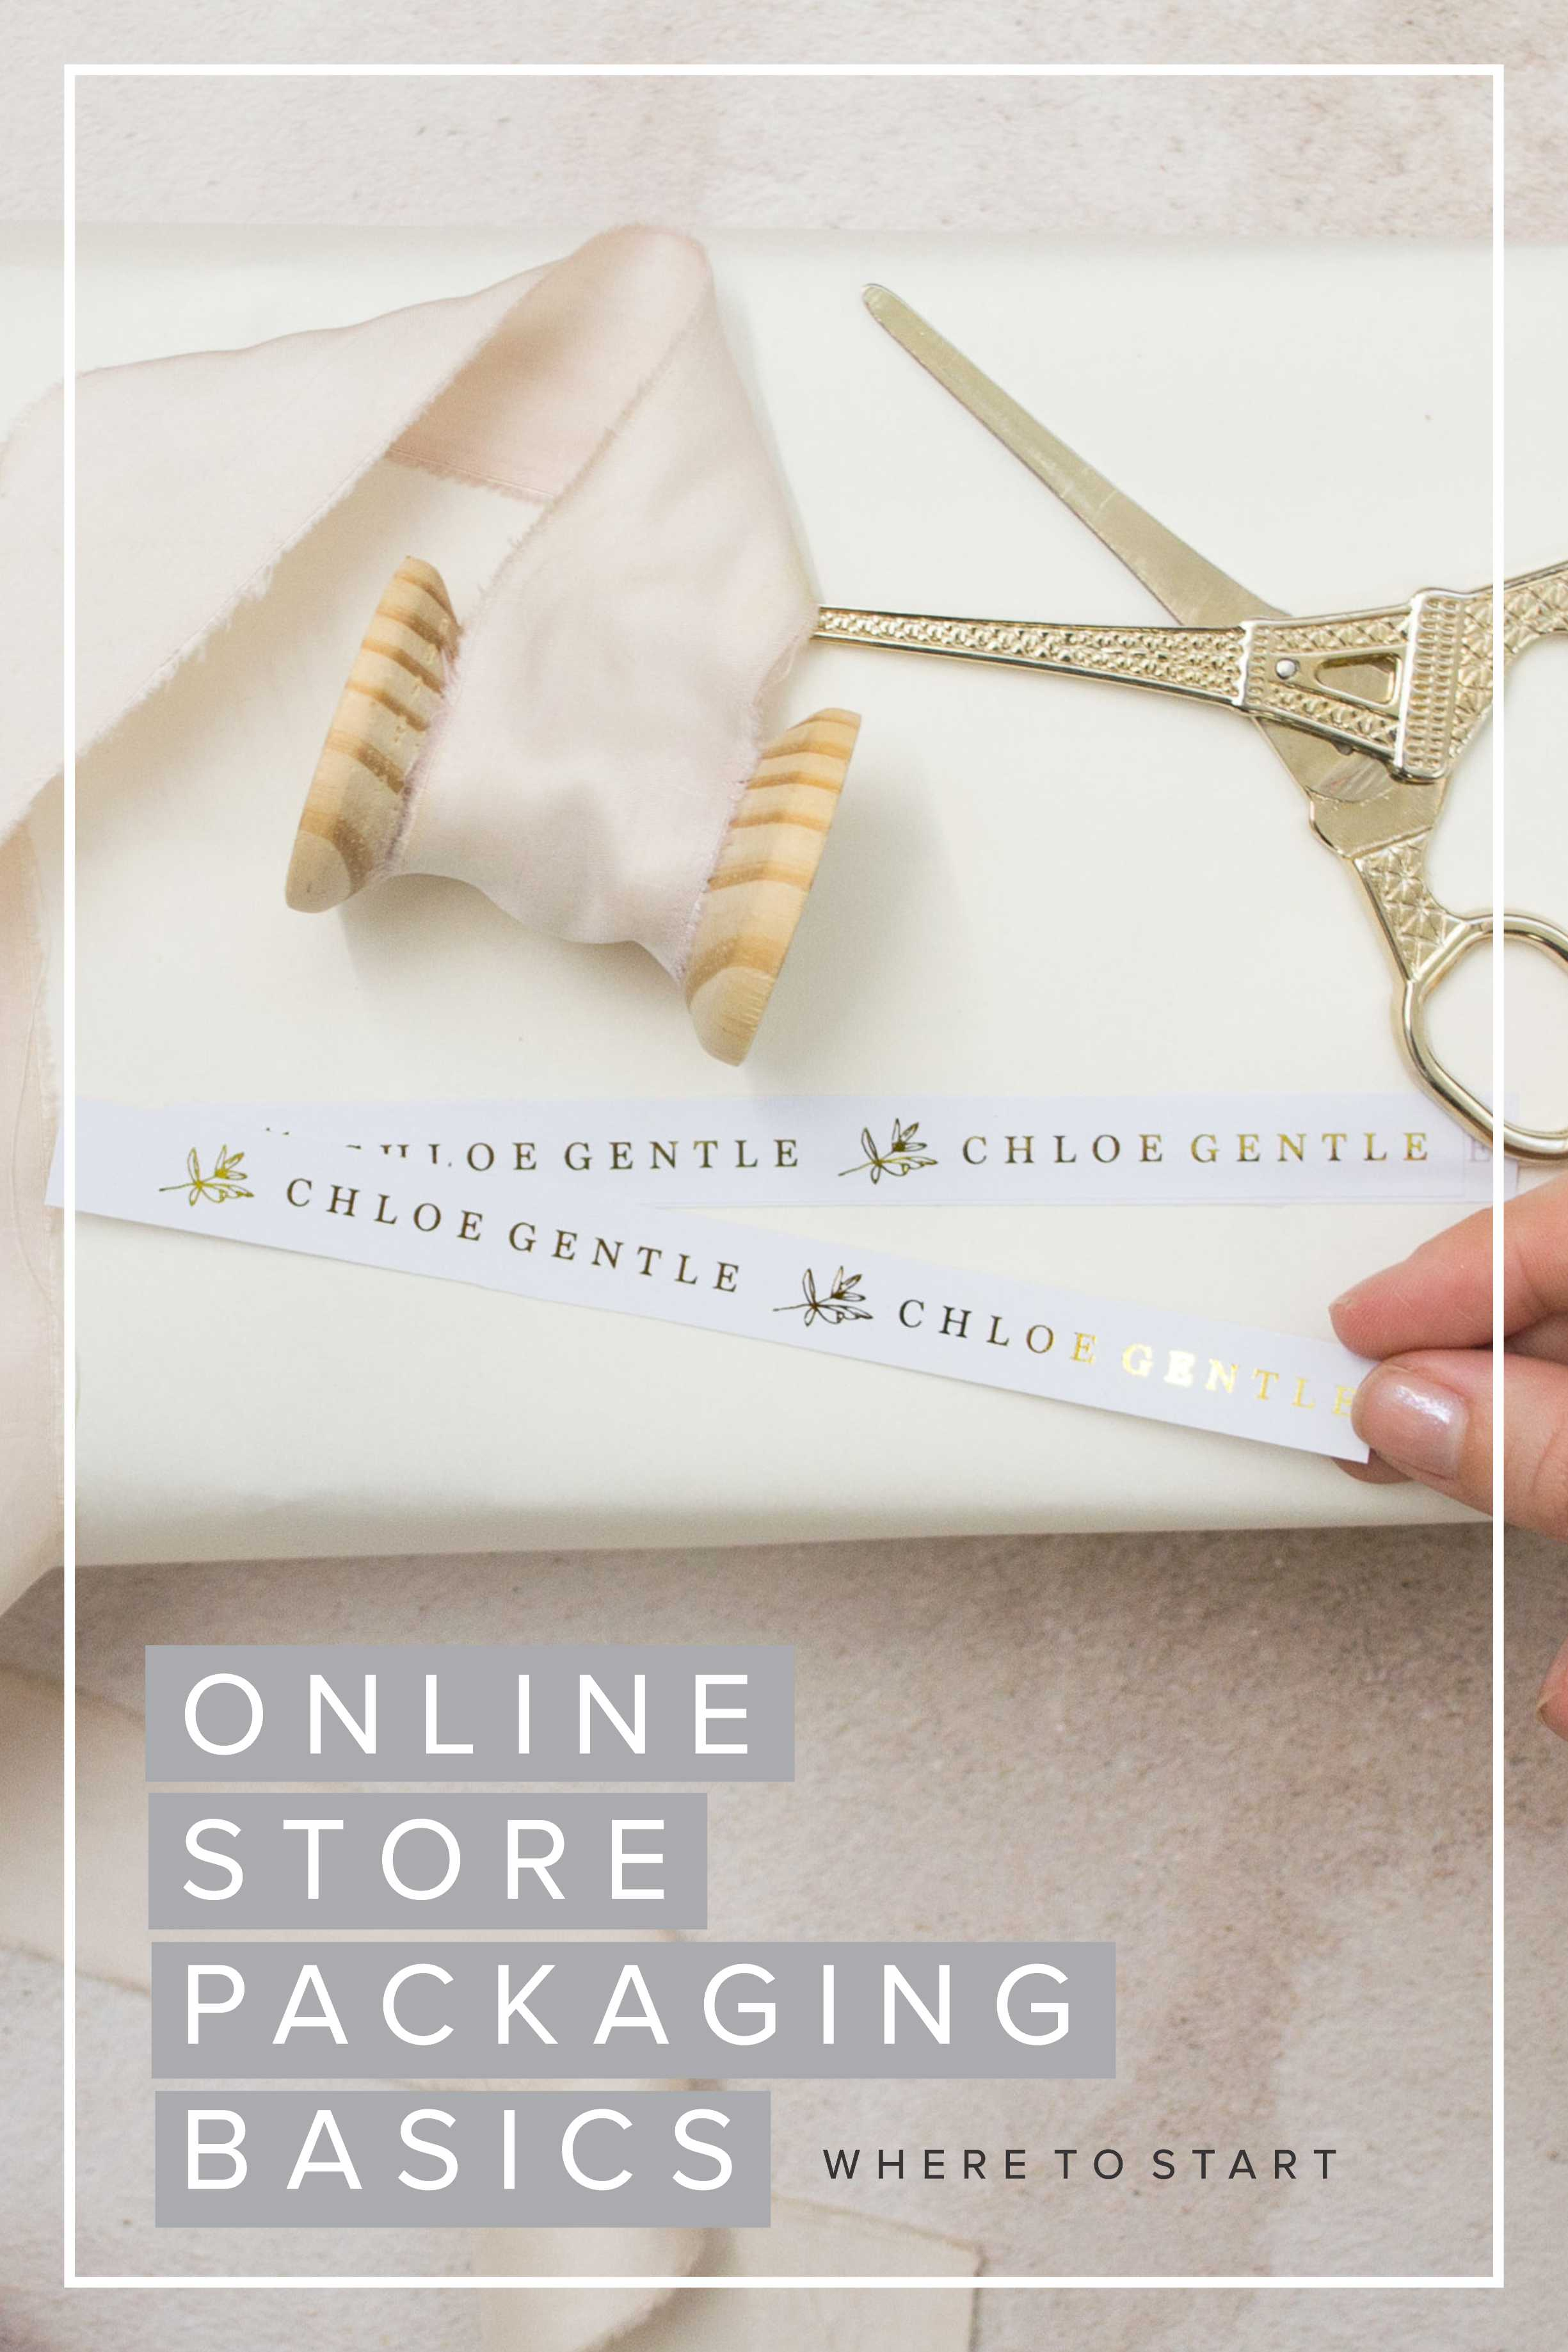 Molly-and-Tom-Online-Store-Packaging-Basics.jpg